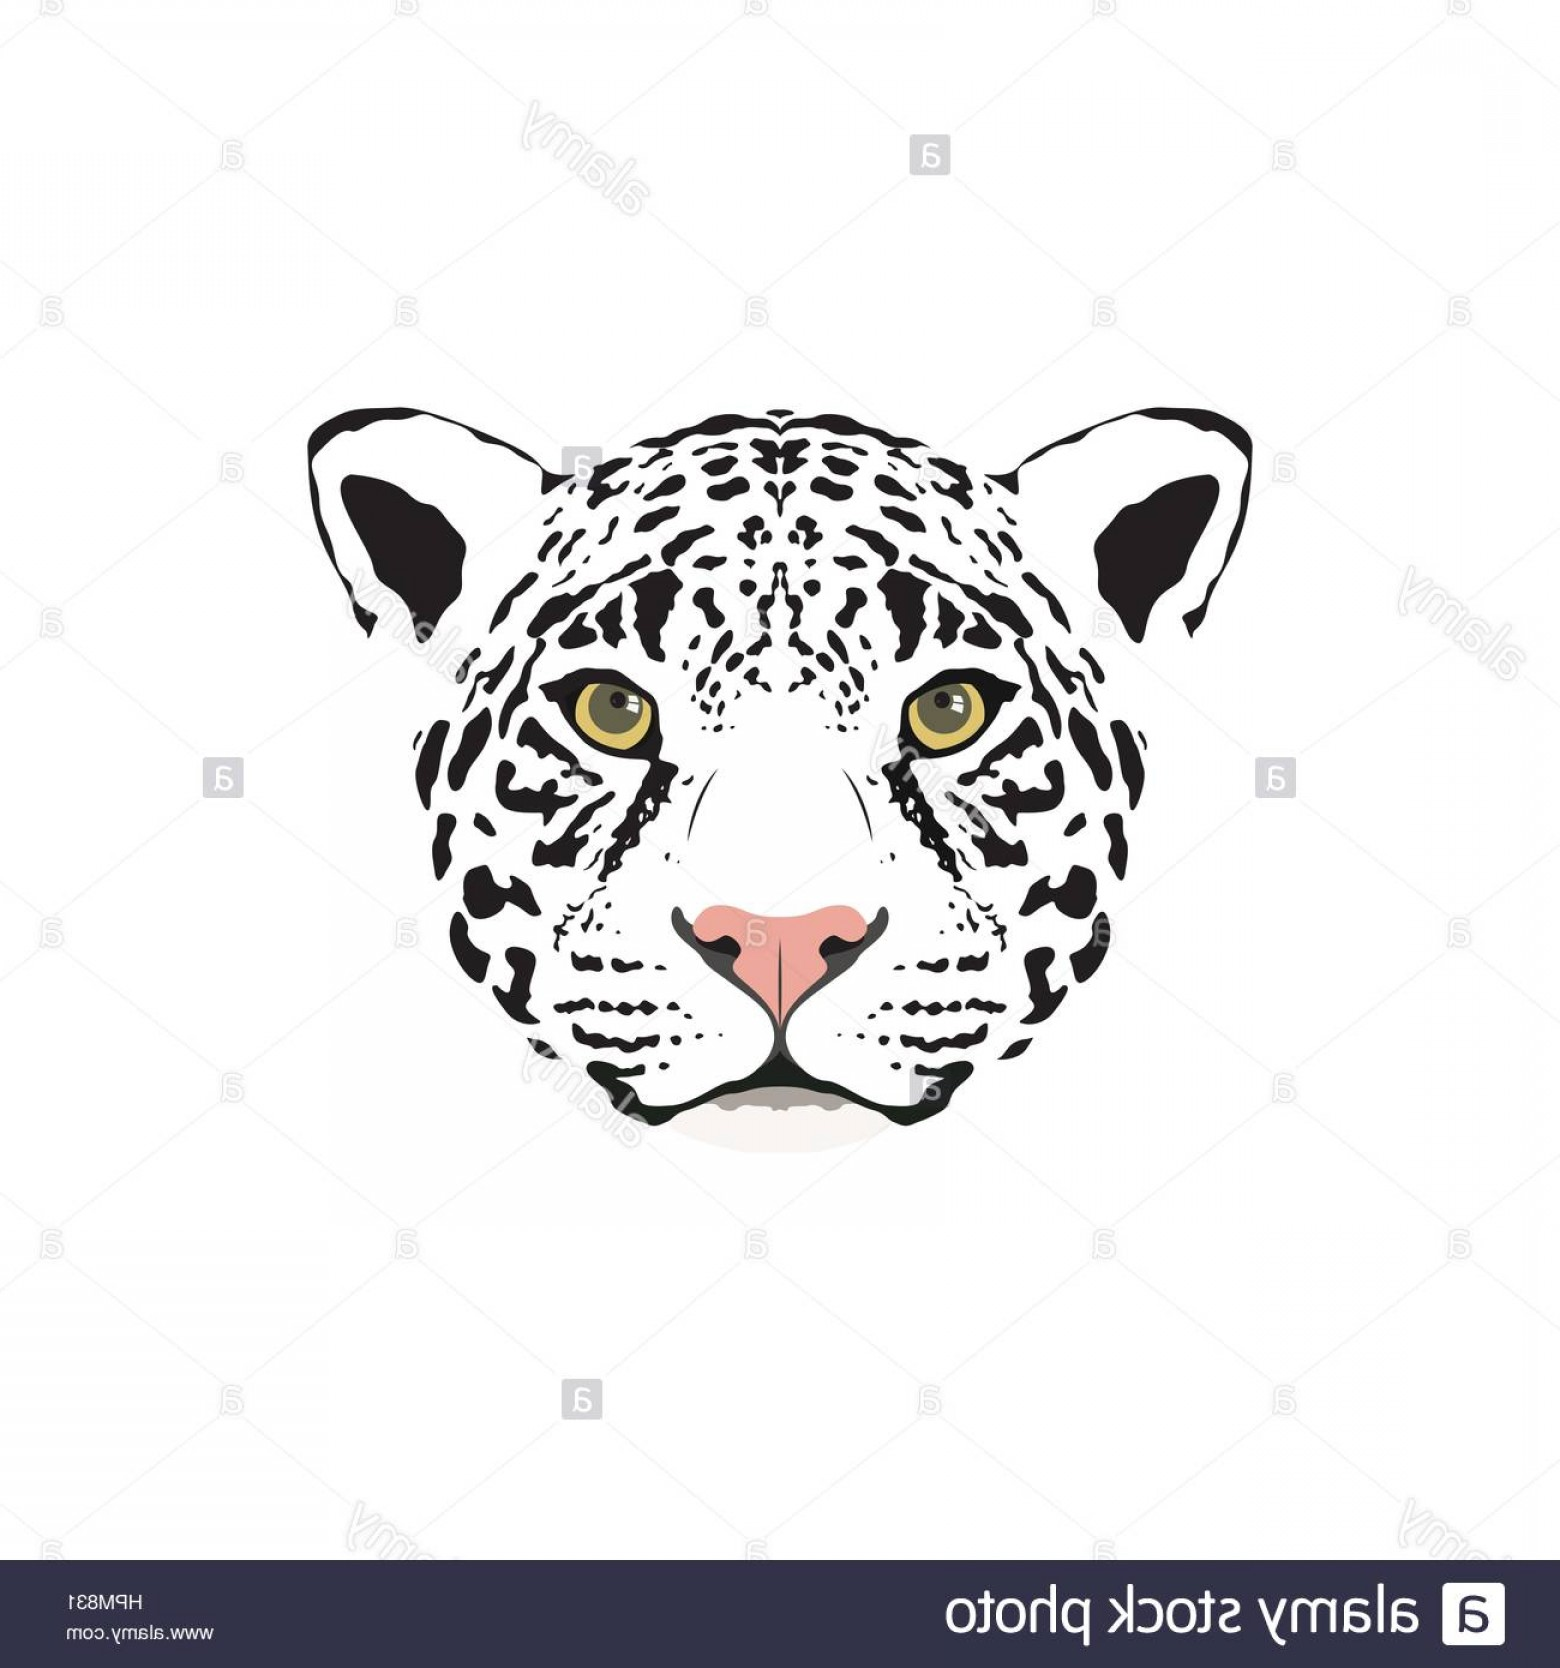 1560x1668 Stock Photo Vector Illustration Of A White Jaguar Head Suitable As